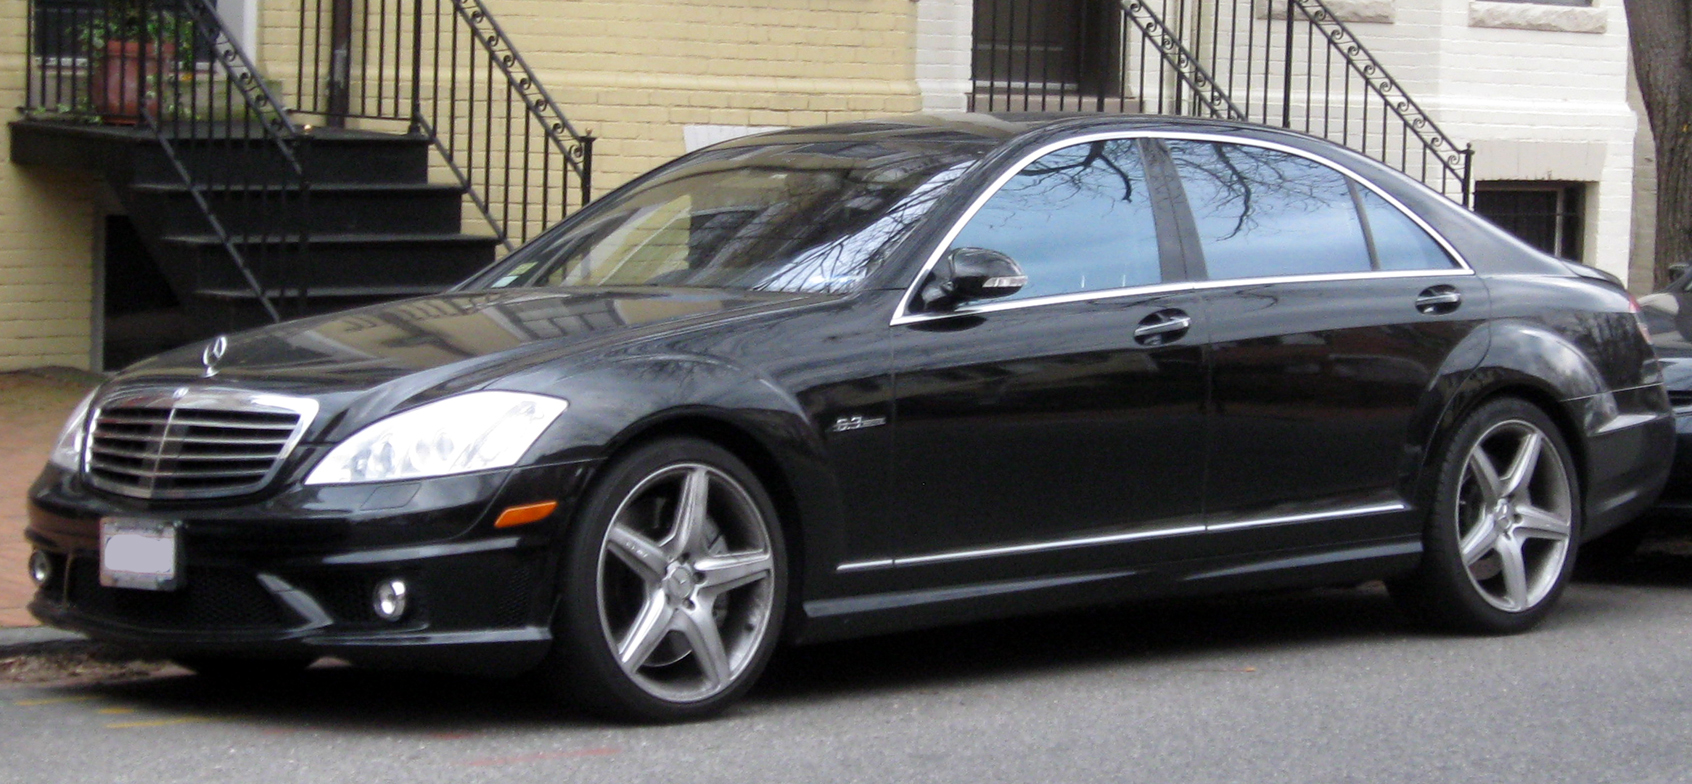 Mercedes benz s 63 amg technical details history photos for History mercedes benz